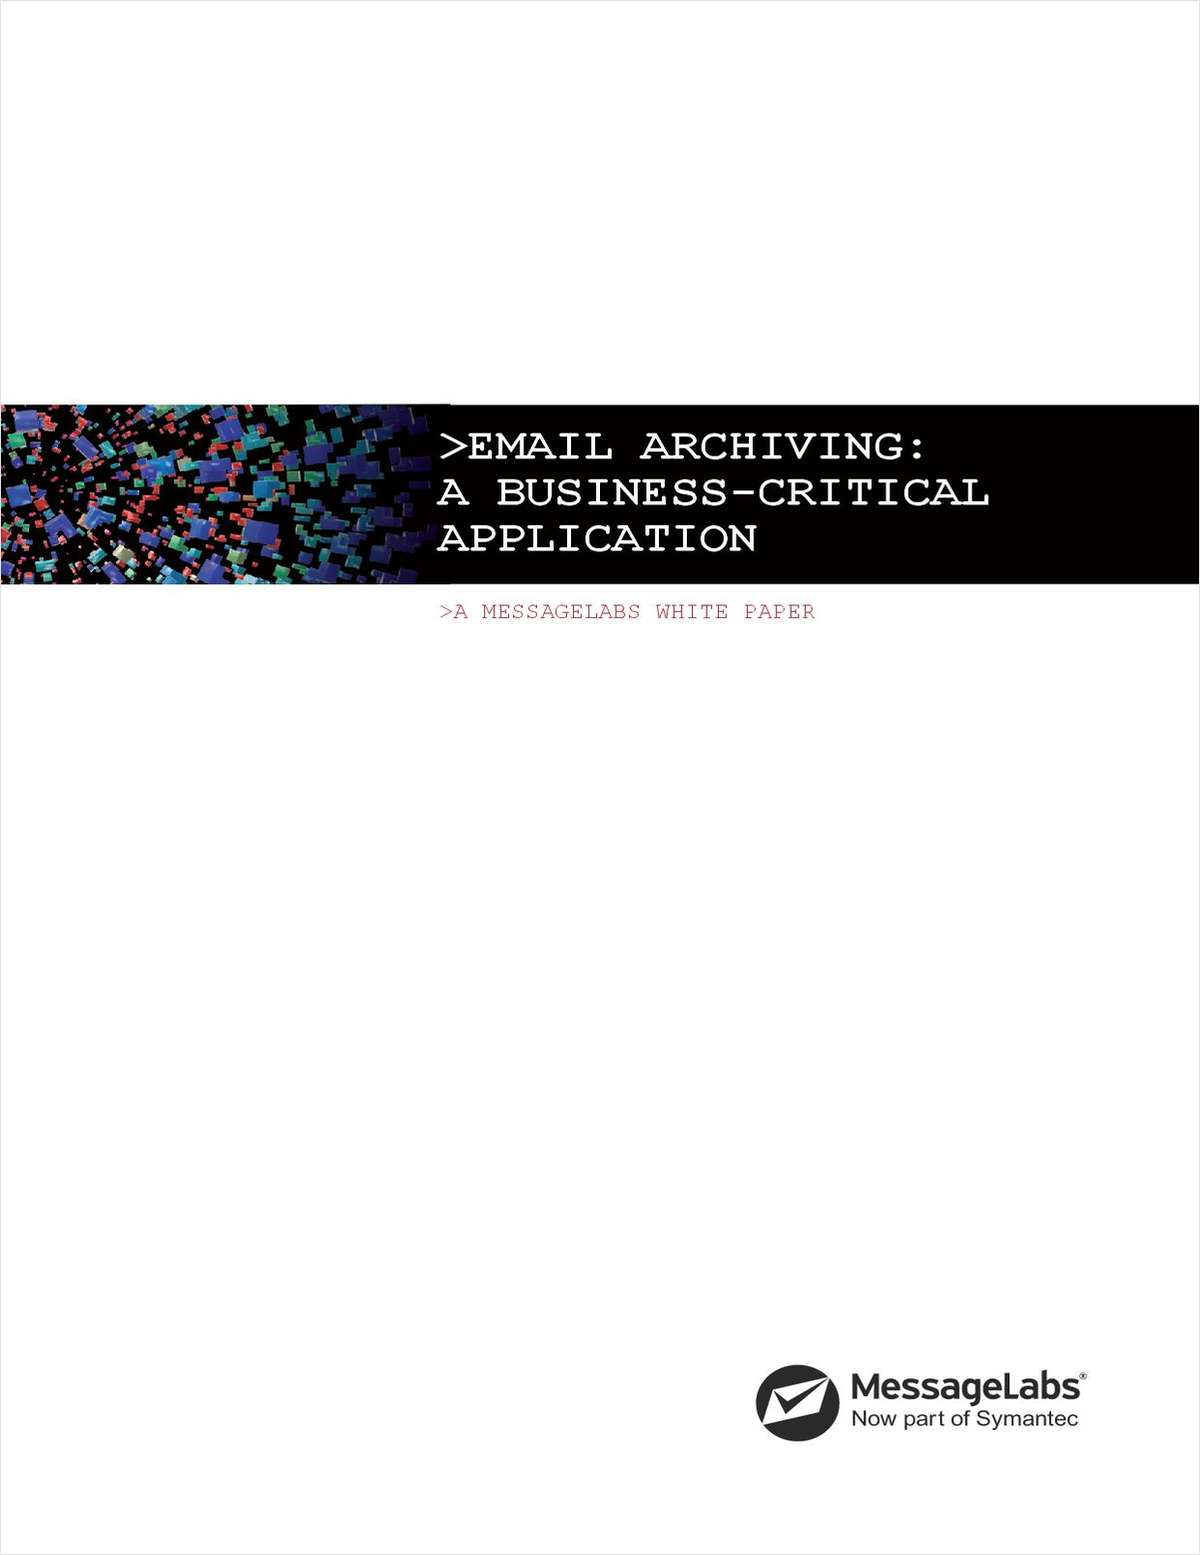 Email Archiving: A Business-Critical Application